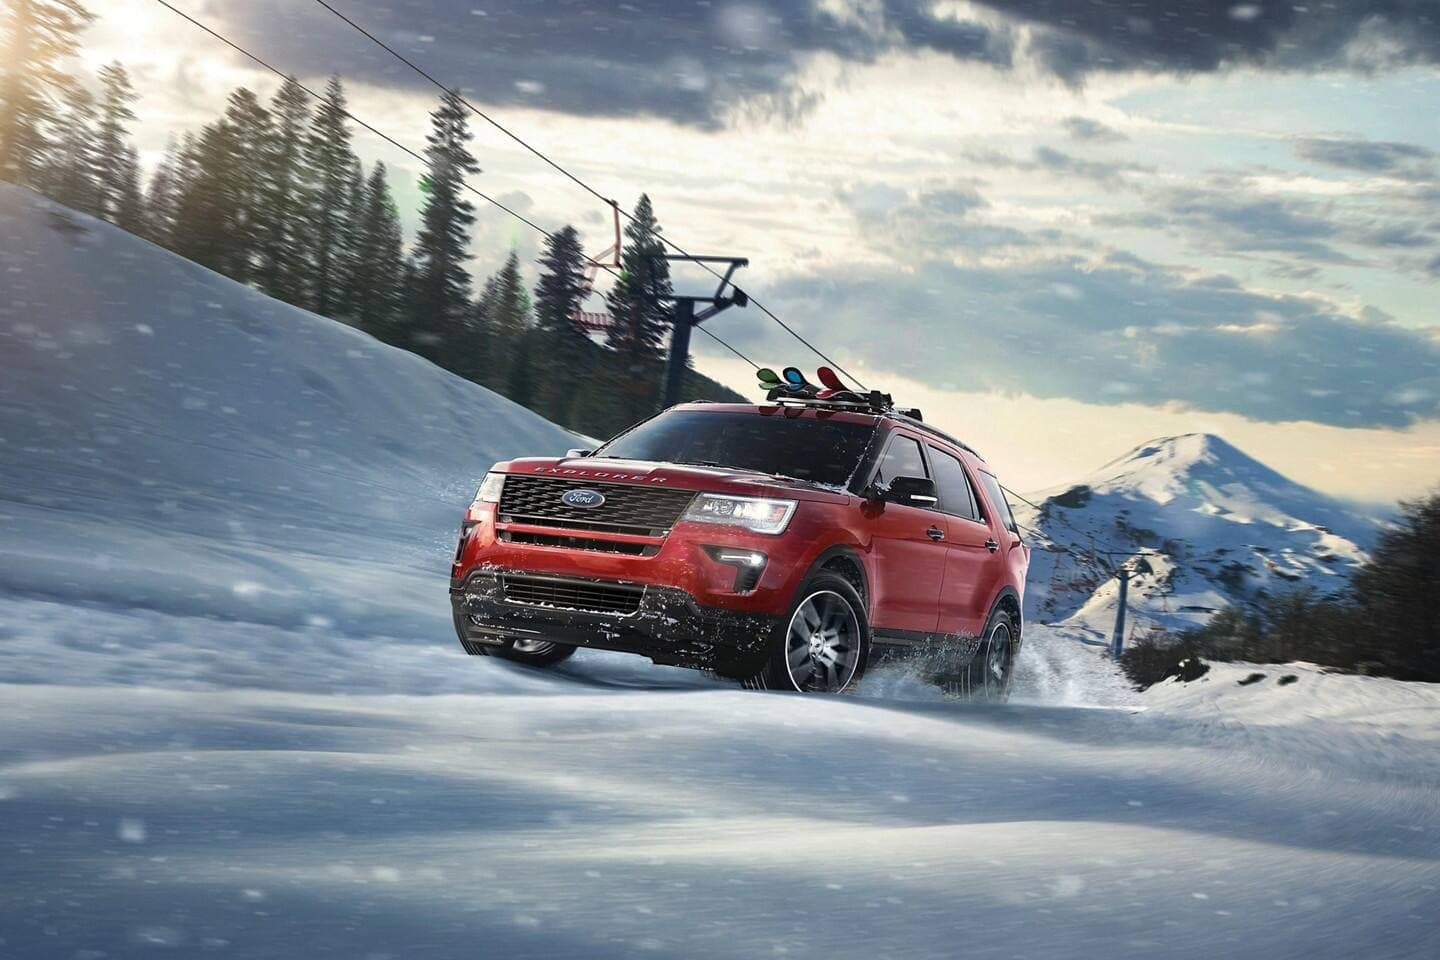 2019 Ford Explorer driving in snow